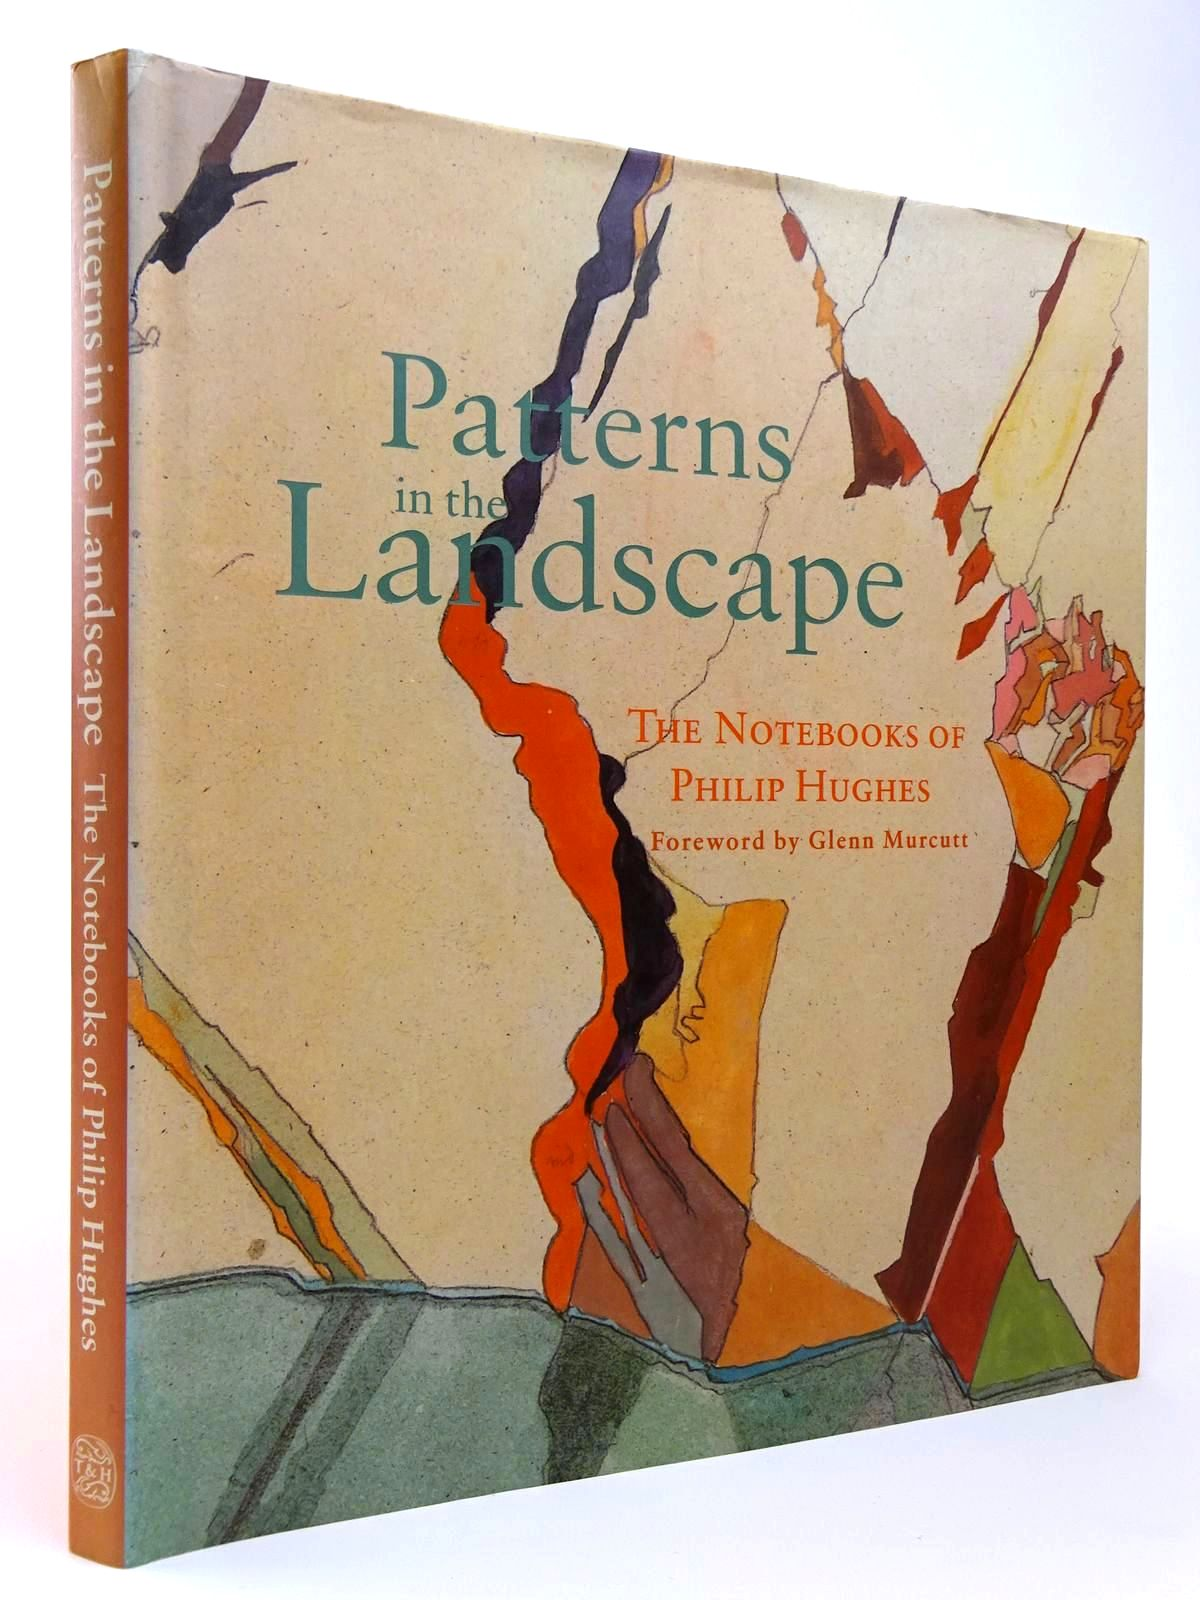 Photo of PATTERNS IN THE LANDSCAPE THE NOTEBOOKS OF PHILIP HUGHES written by Hughes, Philip Murcutt, Glenn illustrated by Hughes, Philip published by Thames and Hudson (STOCK CODE: 2129418)  for sale by Stella & Rose's Books